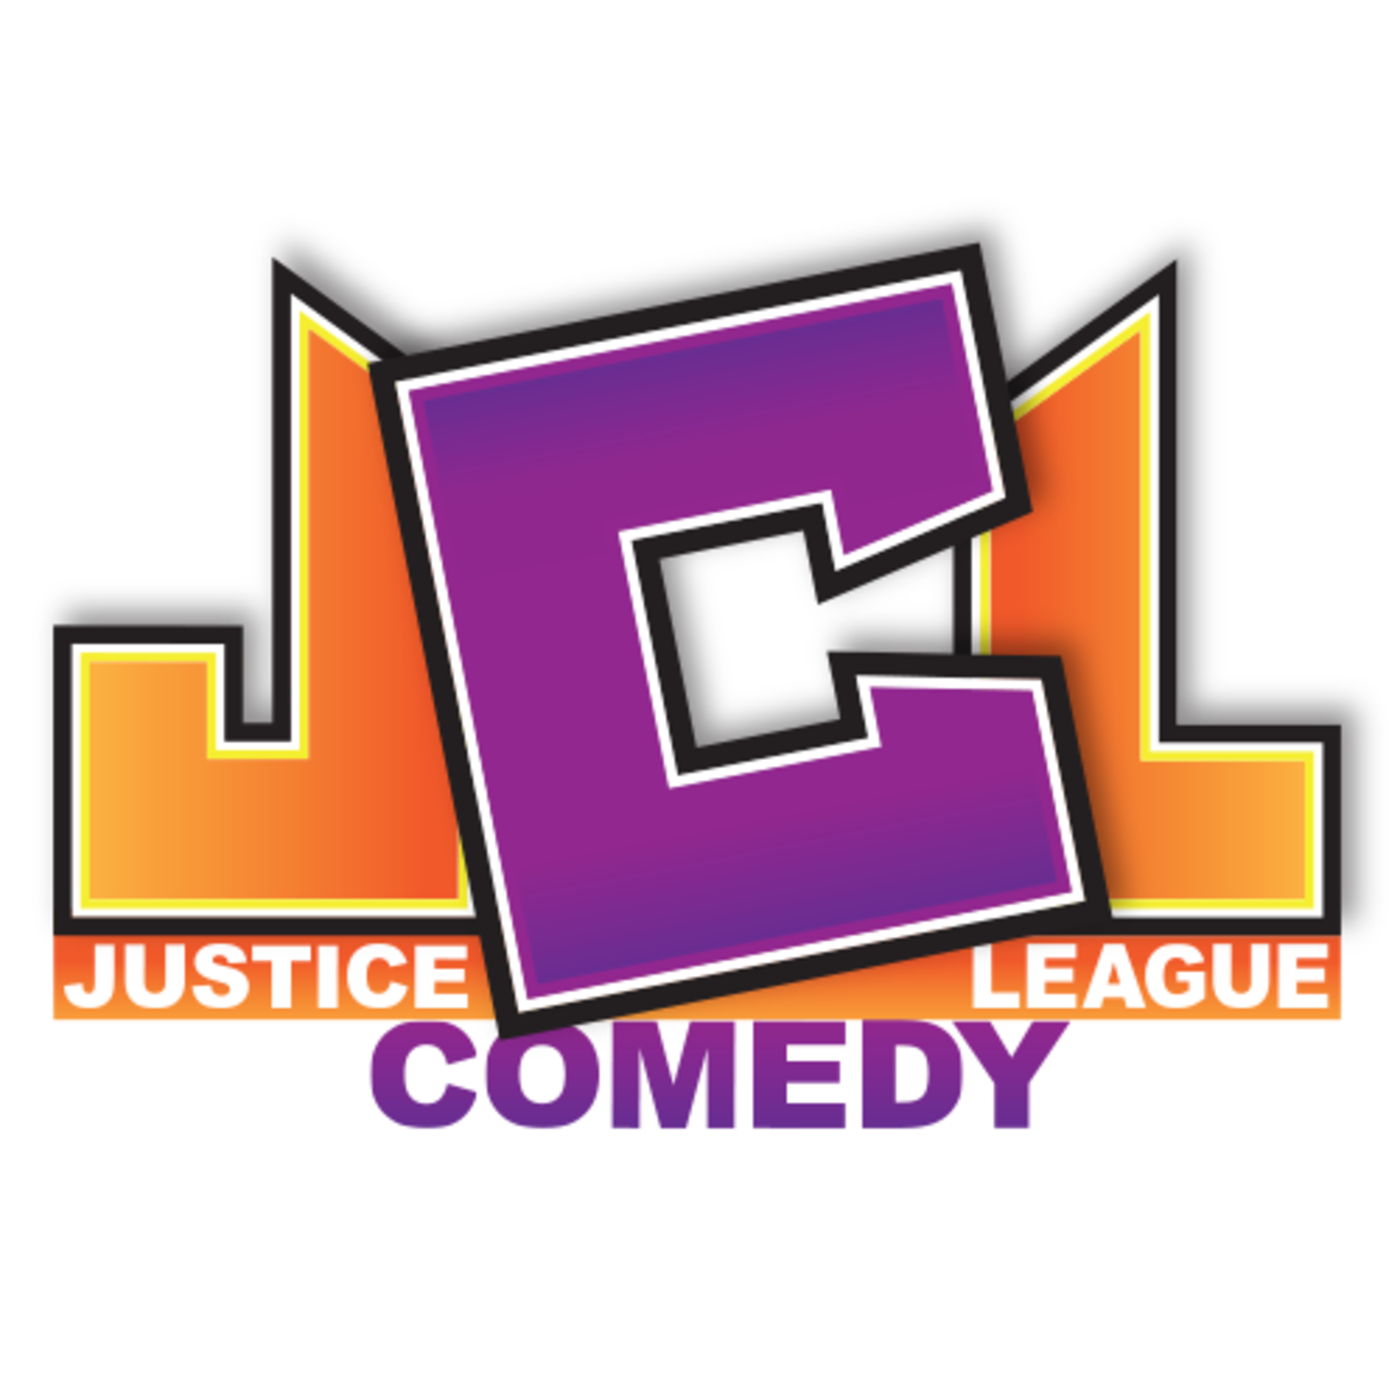 The Gravy Boat - Presented by the justice comedy league